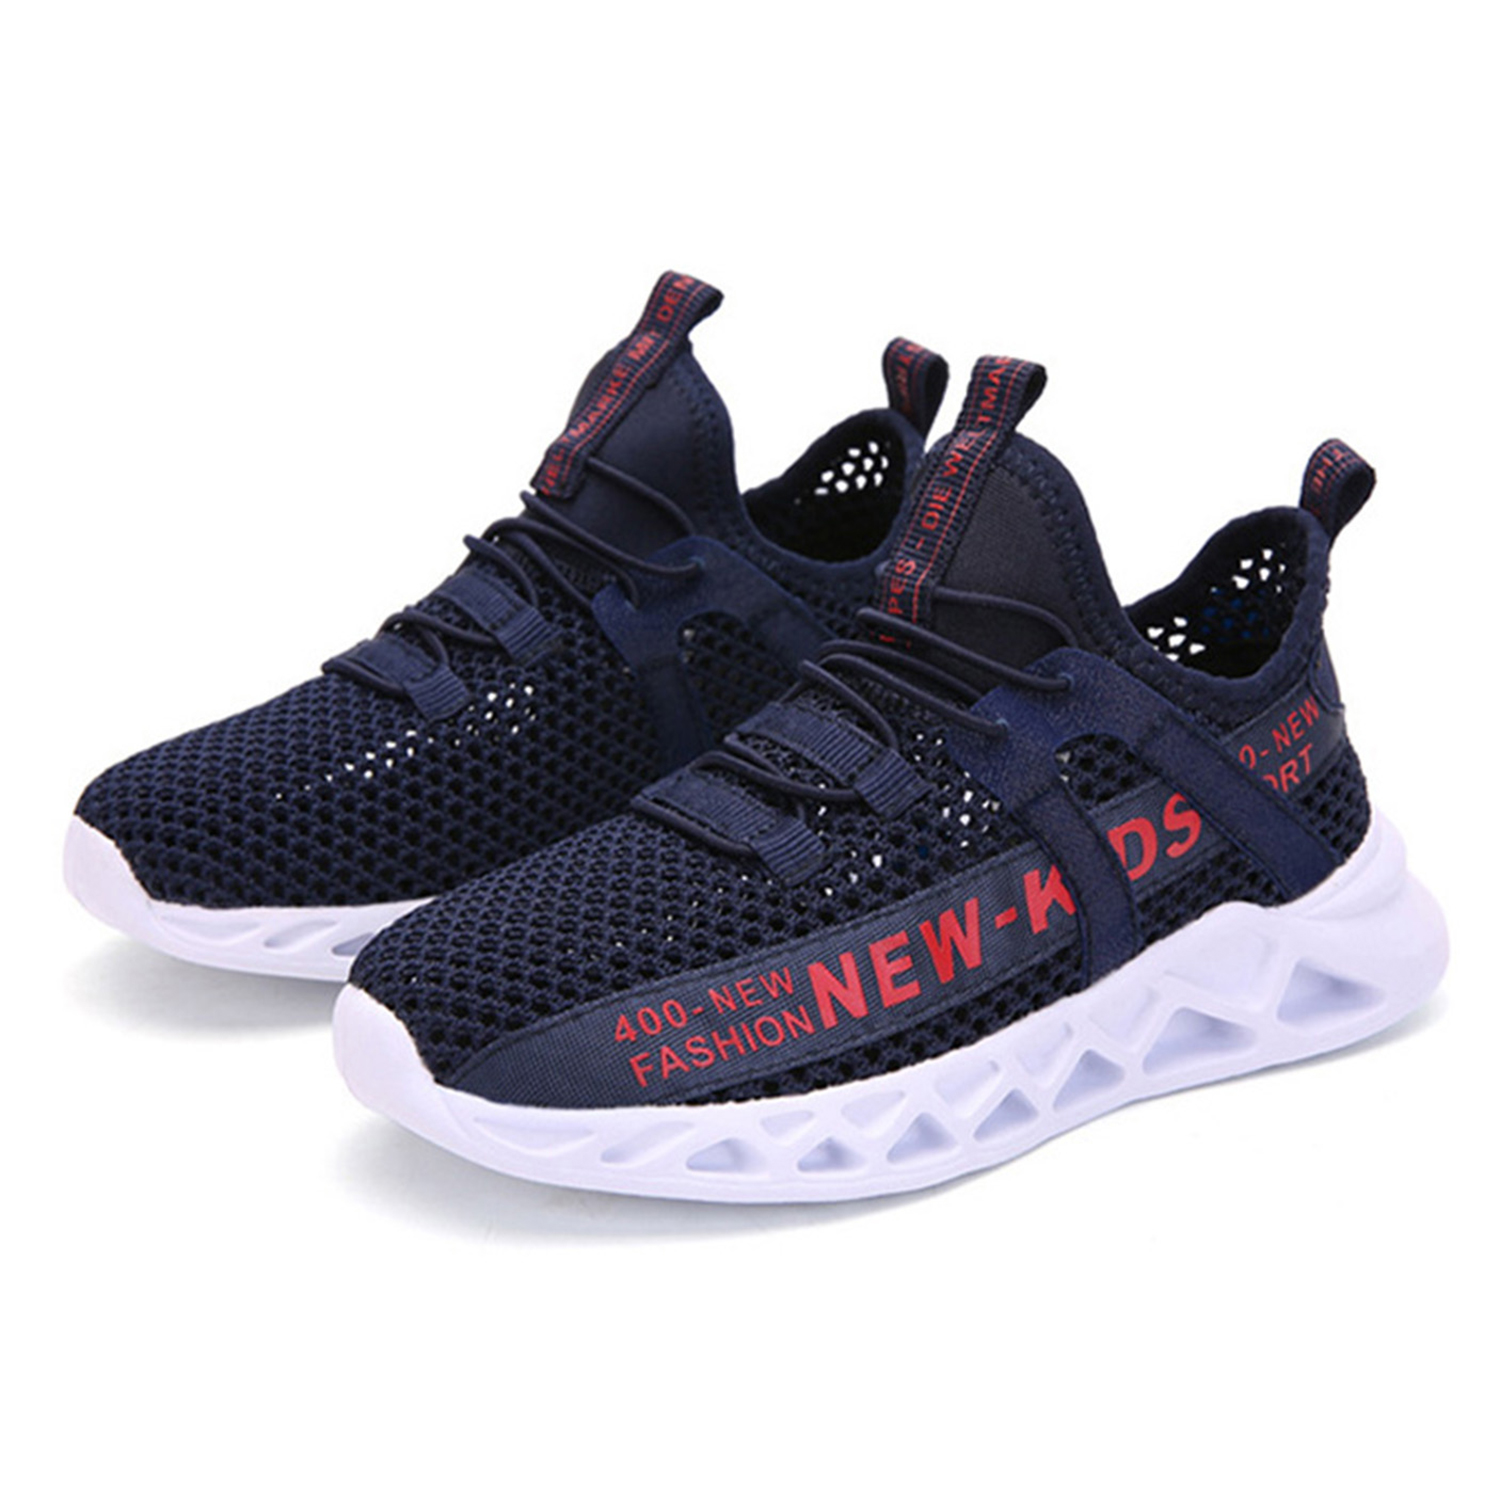 Daeful Lightweight Breathable Tennis Shoes